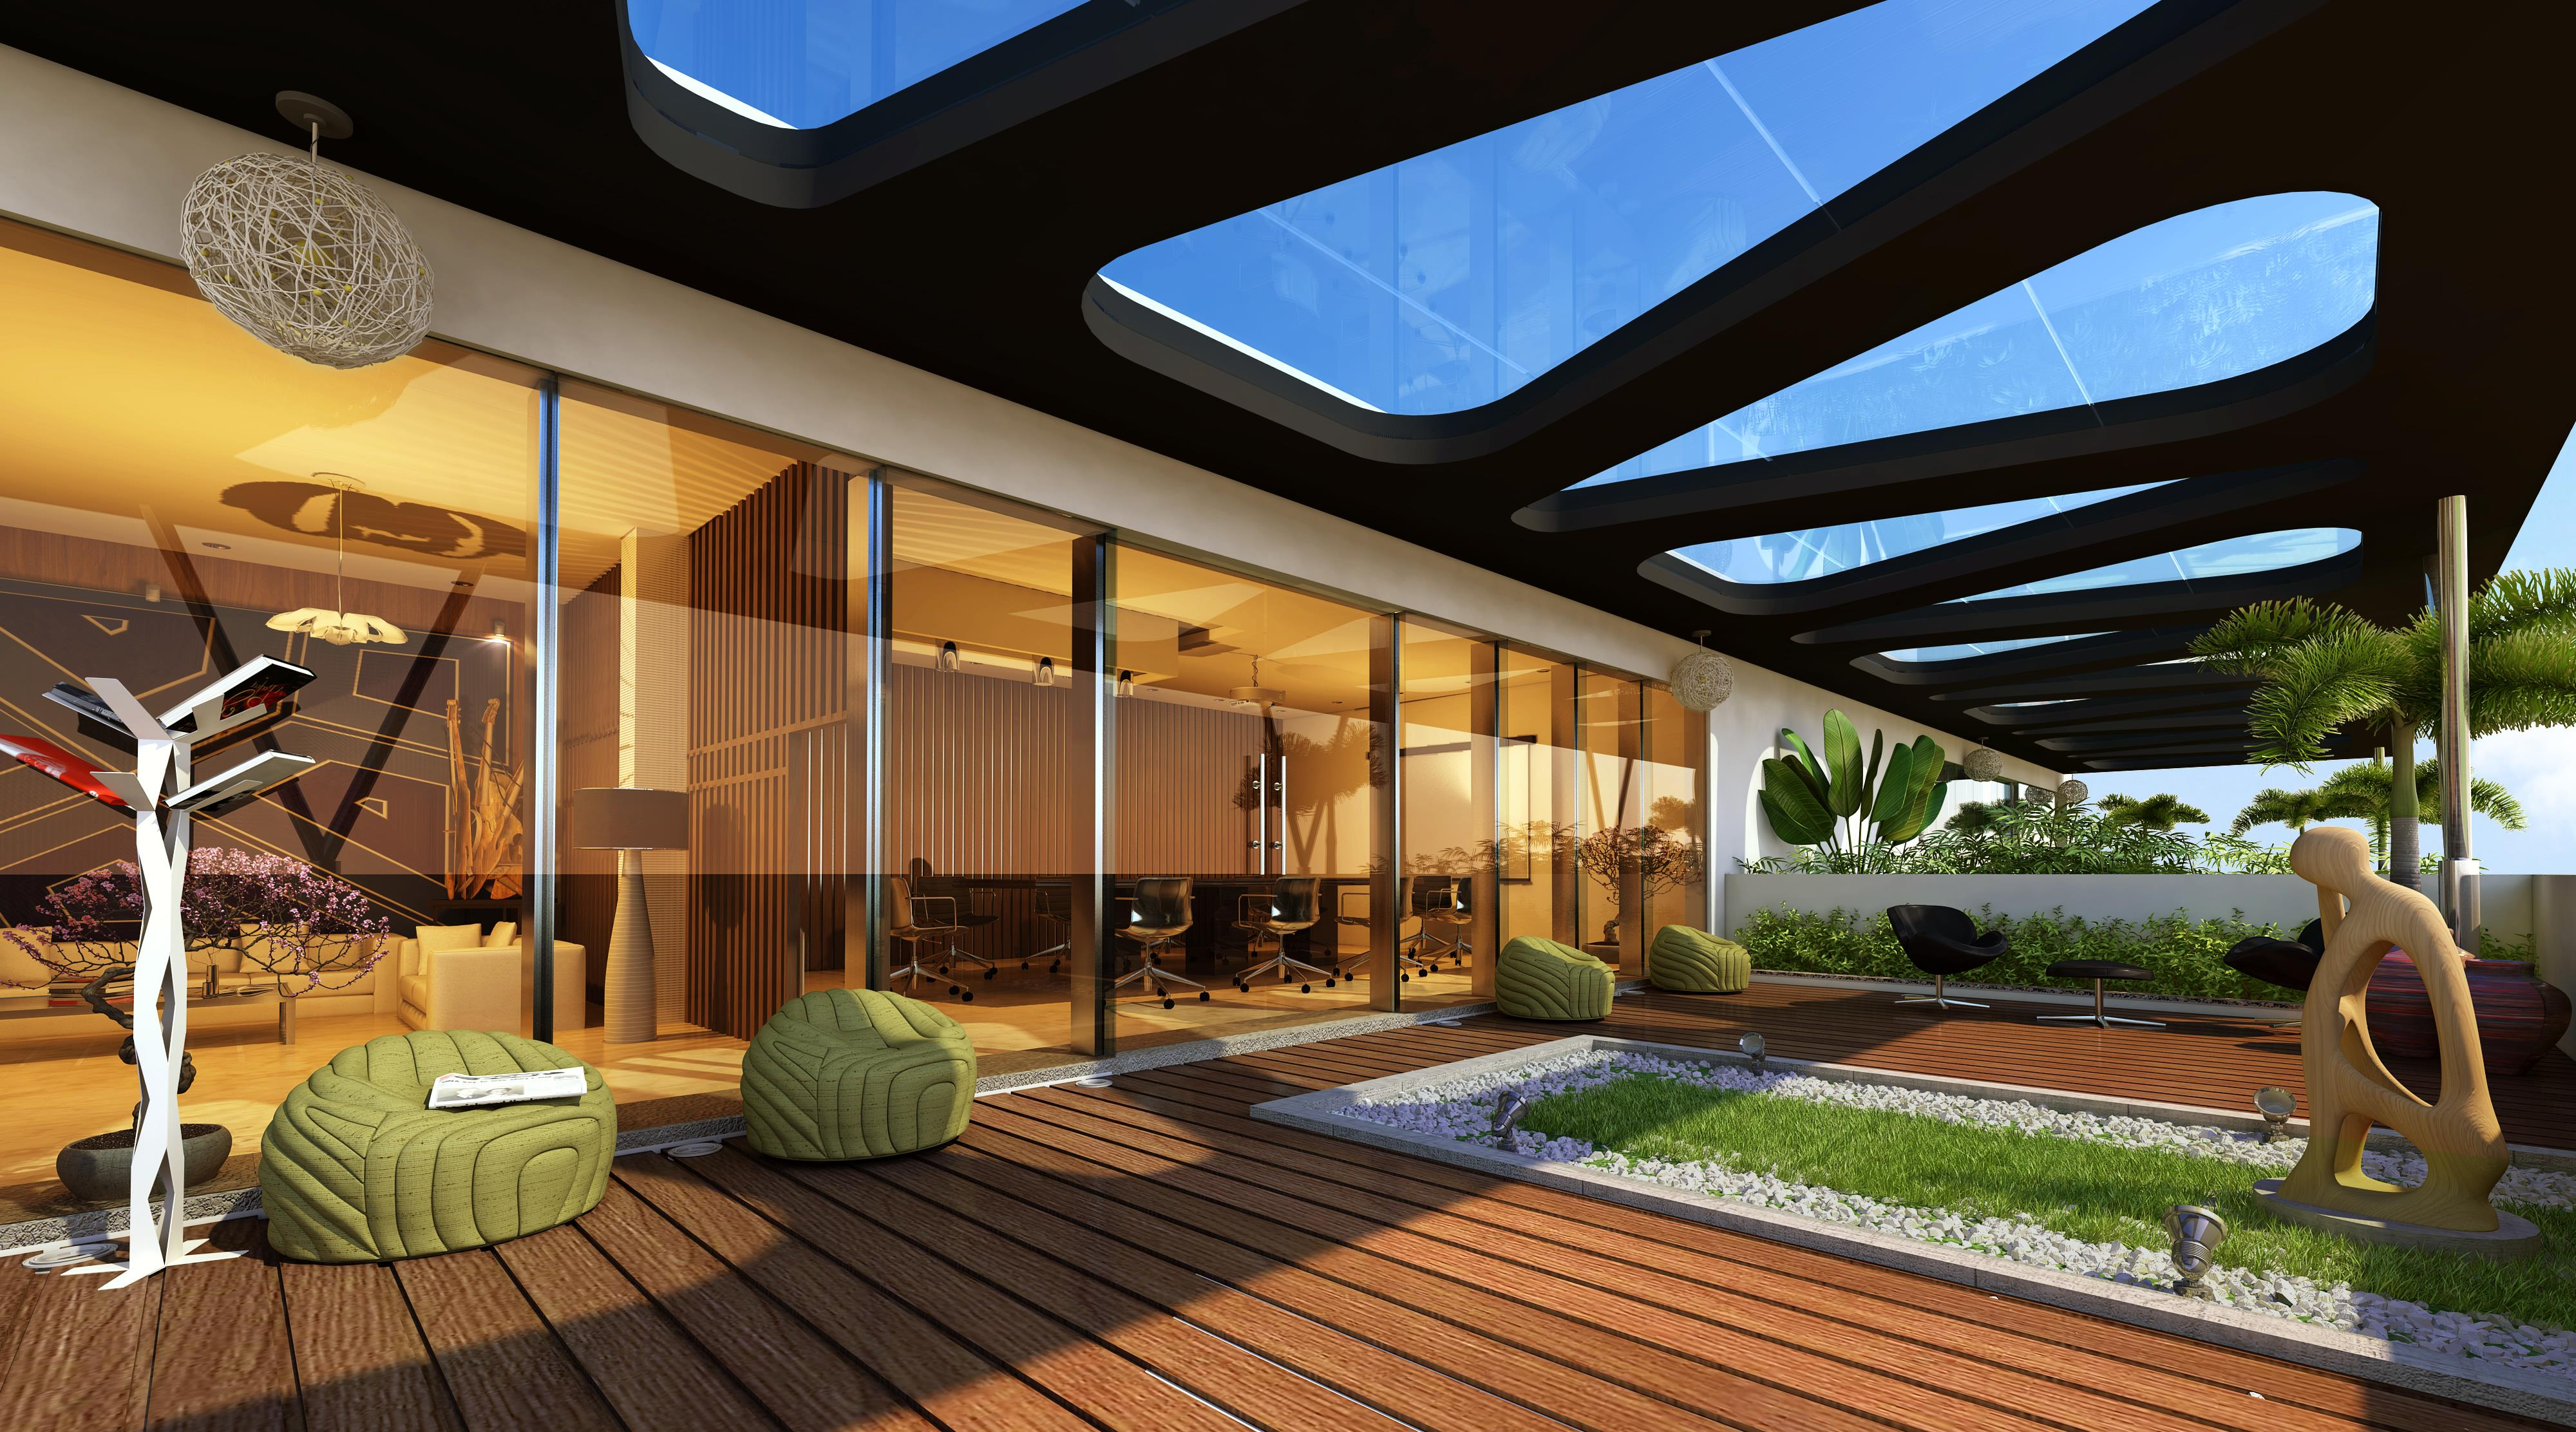 3d-day-view-living-room-interi....